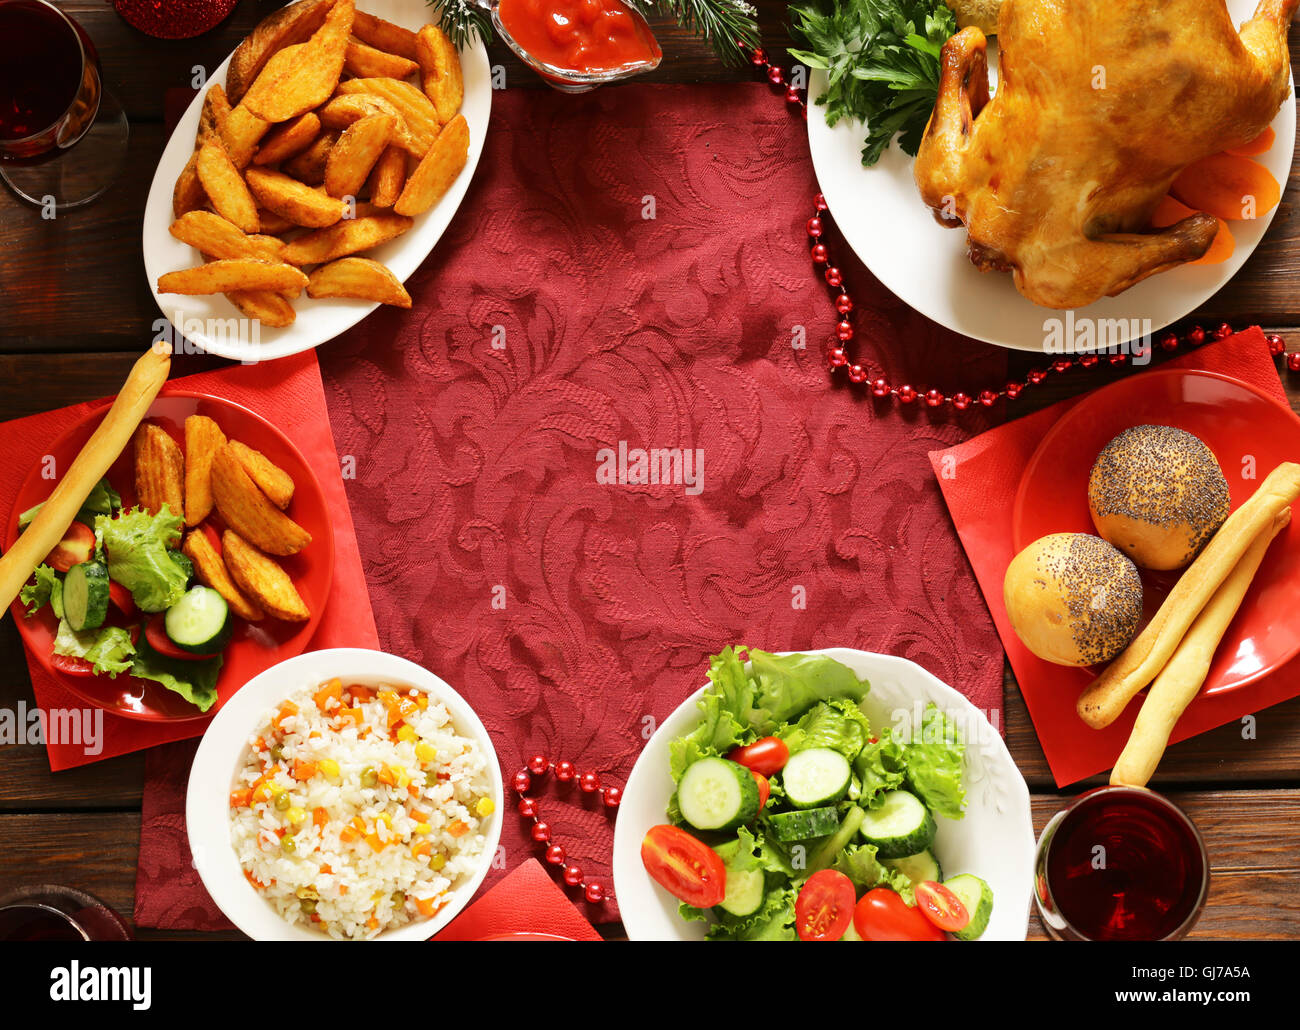 traditional food for christmas dinner festive table setting and decorations